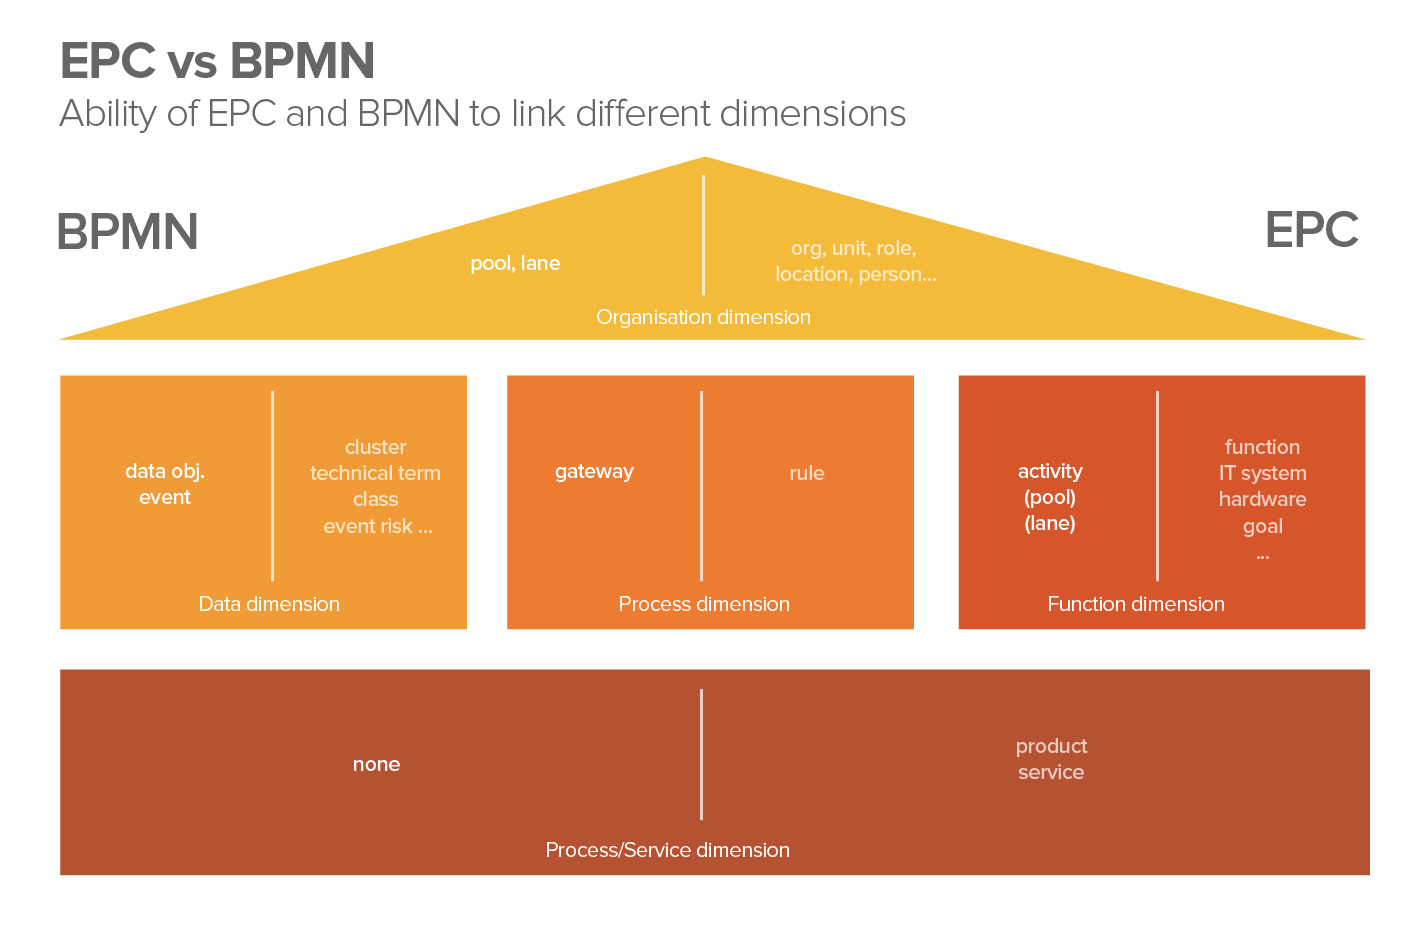 Epc vs bpmn reviewing modelling notations ccuart Image collections